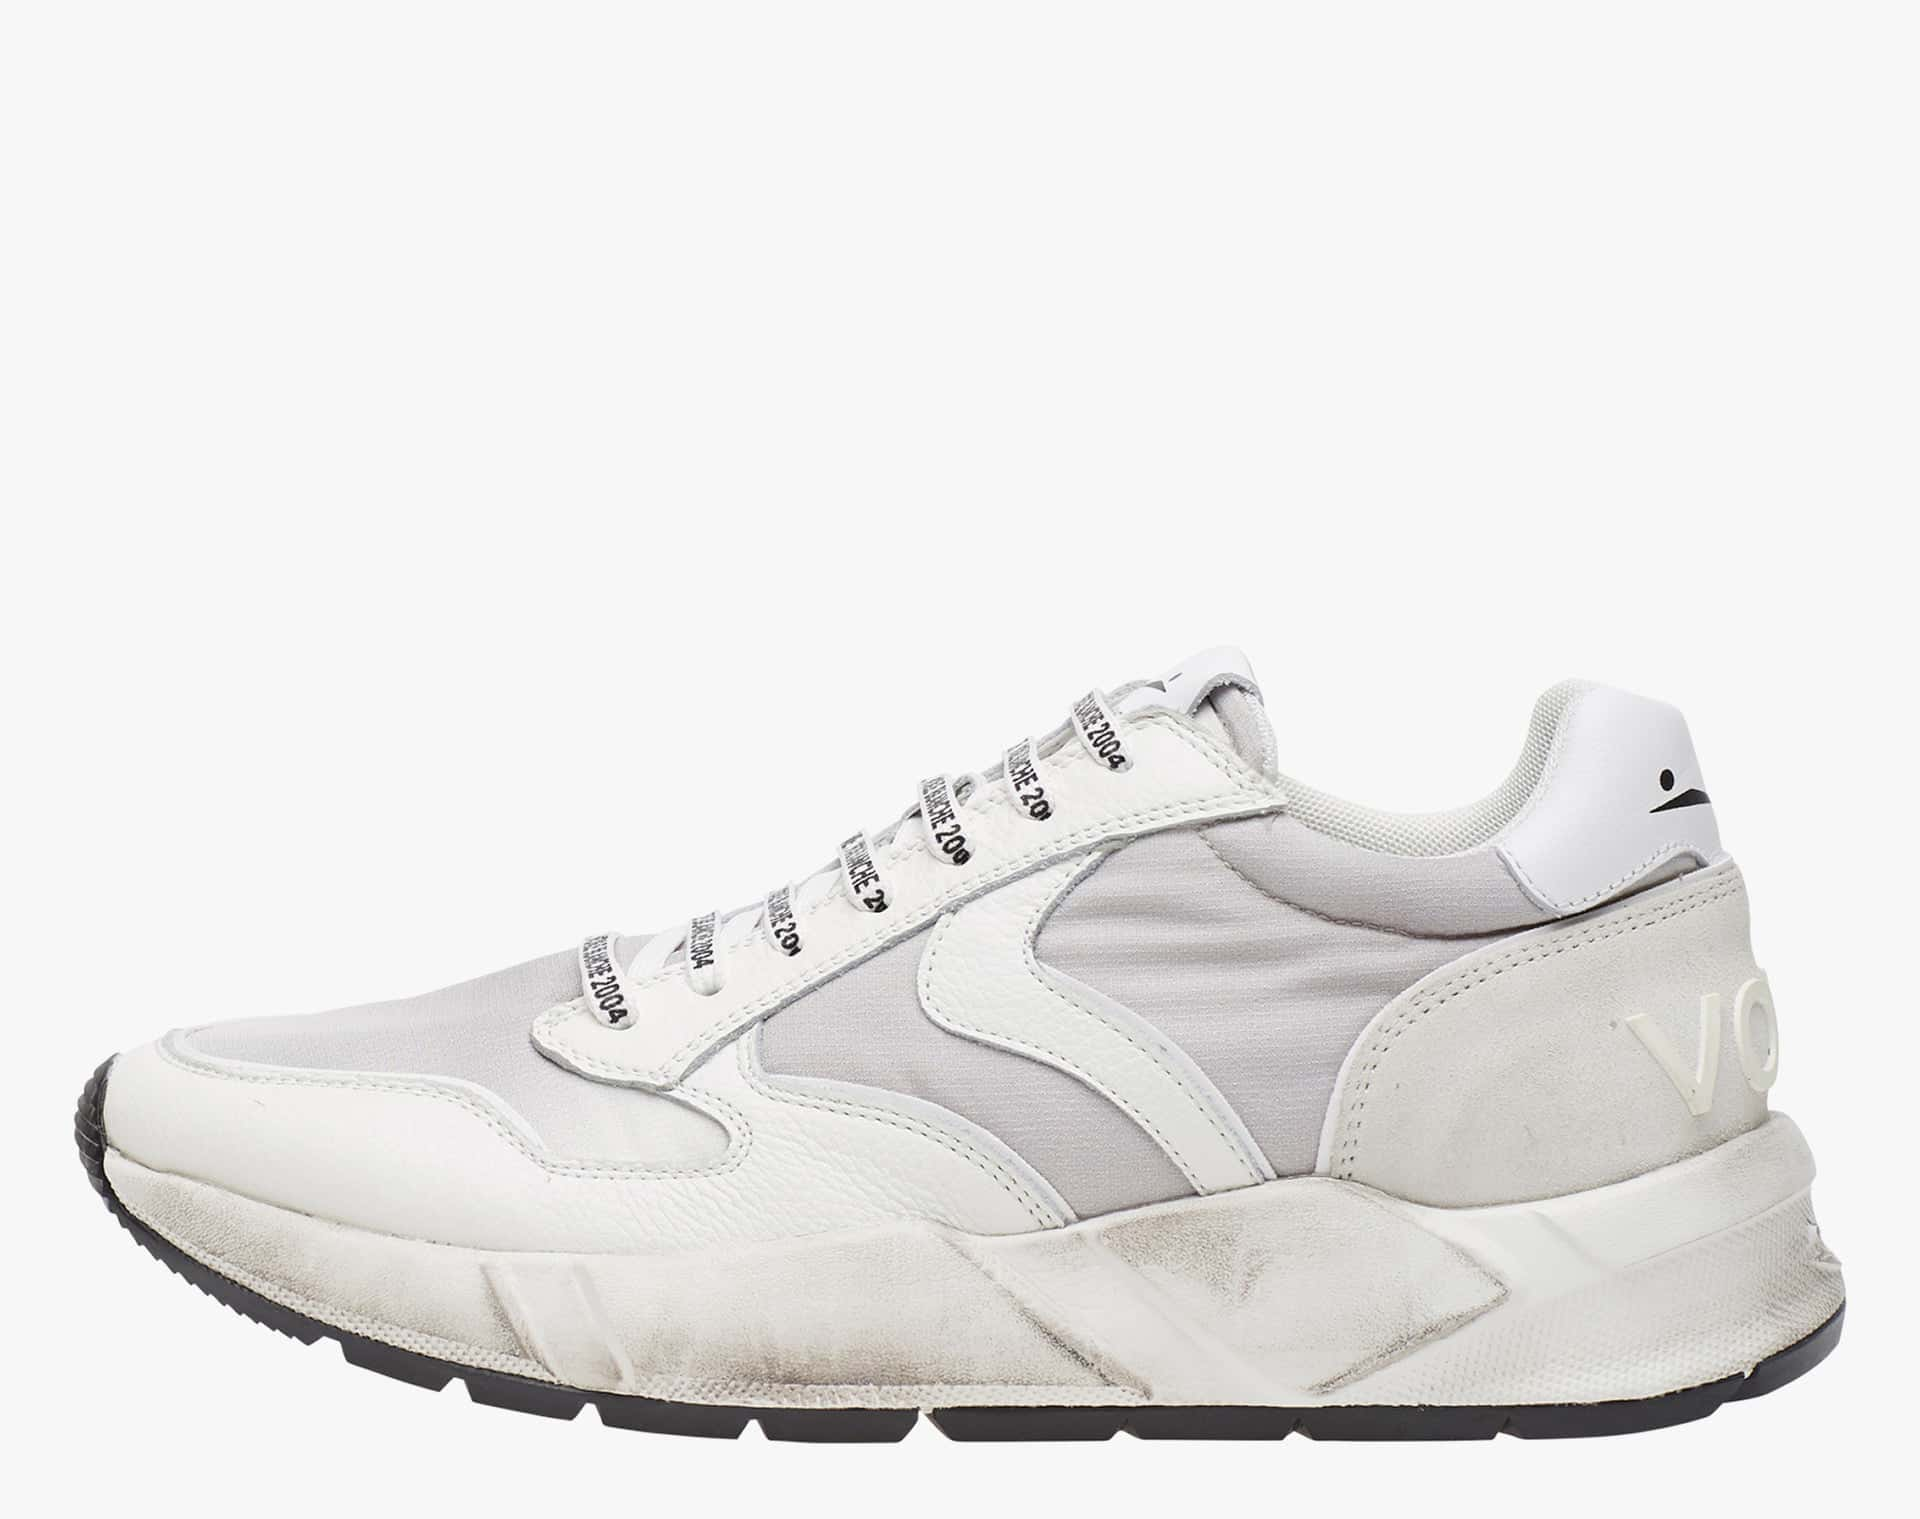 ARPOLH - Dirty effect leather and nylon fabric sneakers - White